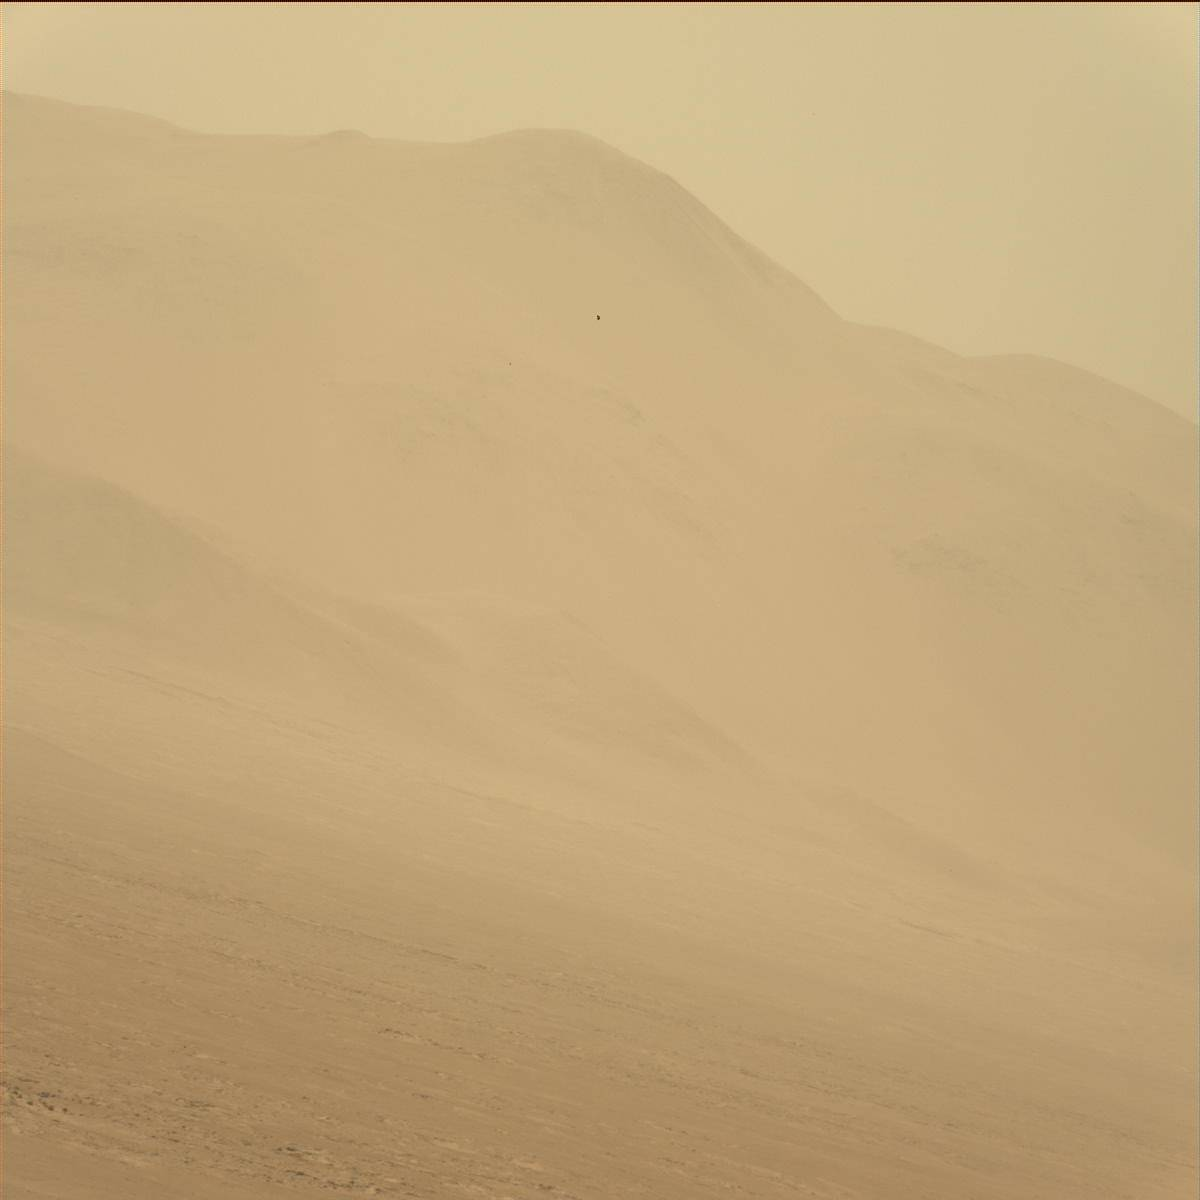 Nasa's Mars rover Curiosity acquired this image using its Mast Camera (Mastcam) on Sol 1366